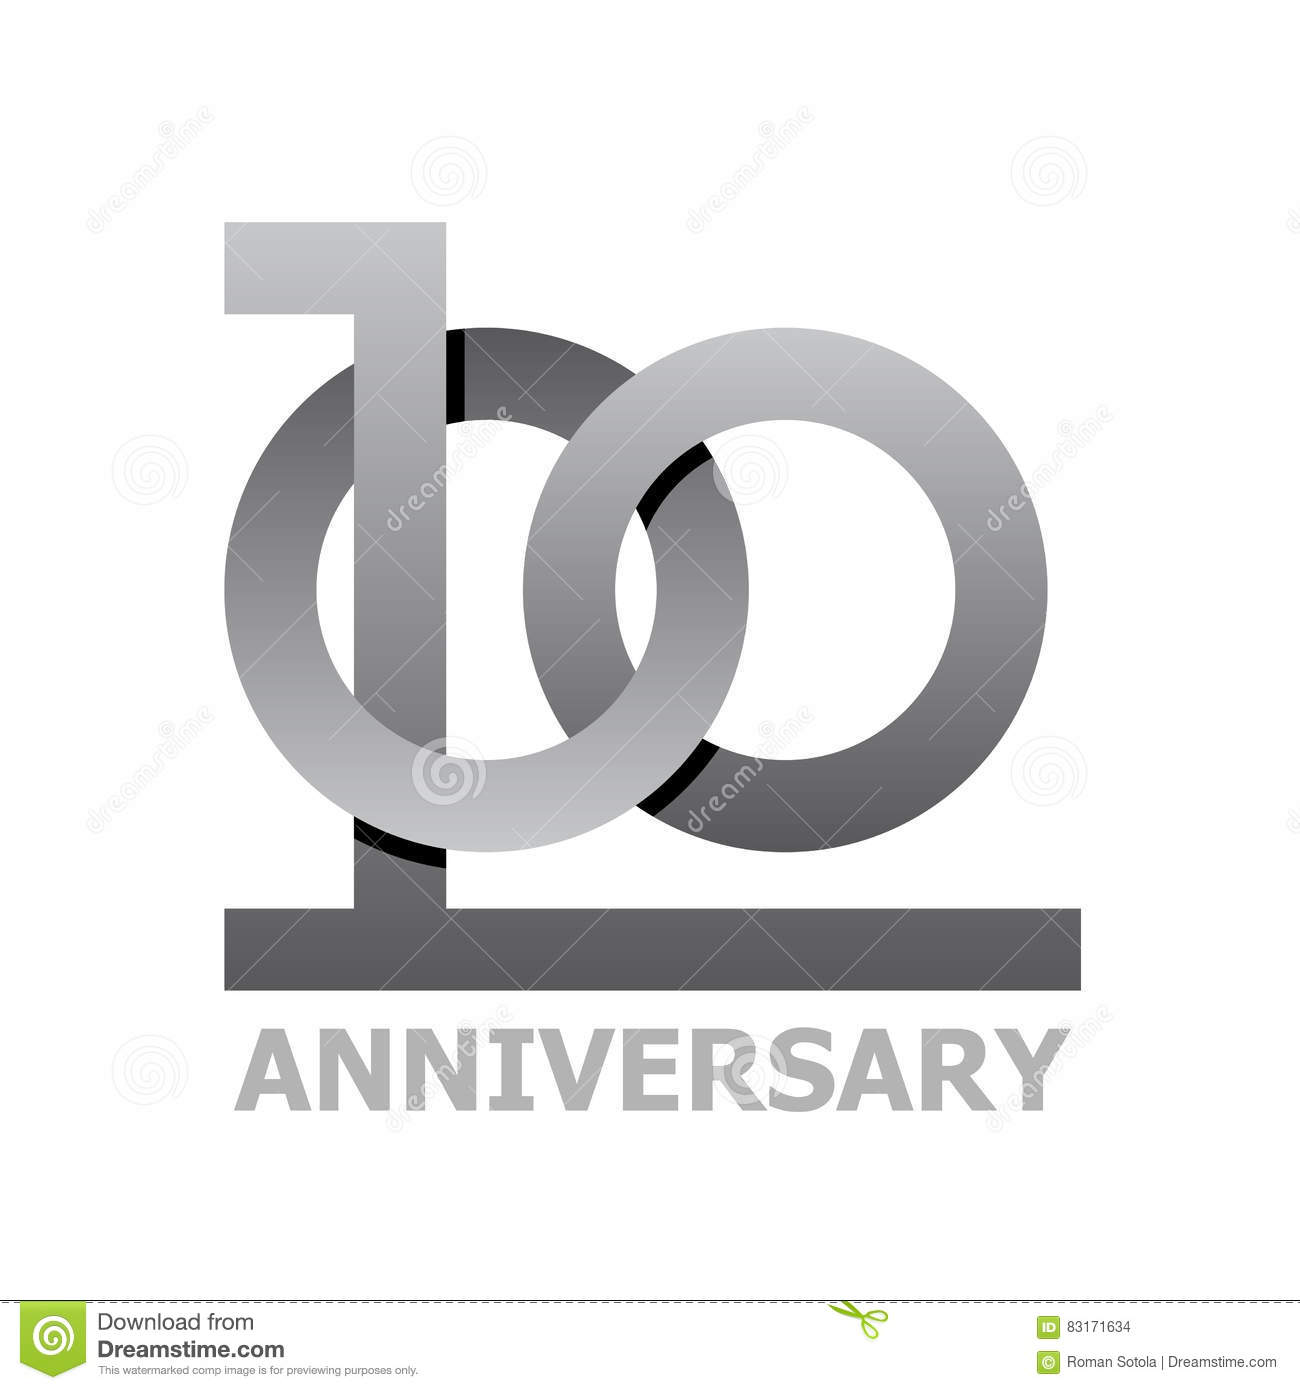 100 years anniversary symbol stock vector illustration of 100 years anniversary symbol buycottarizona Image collections